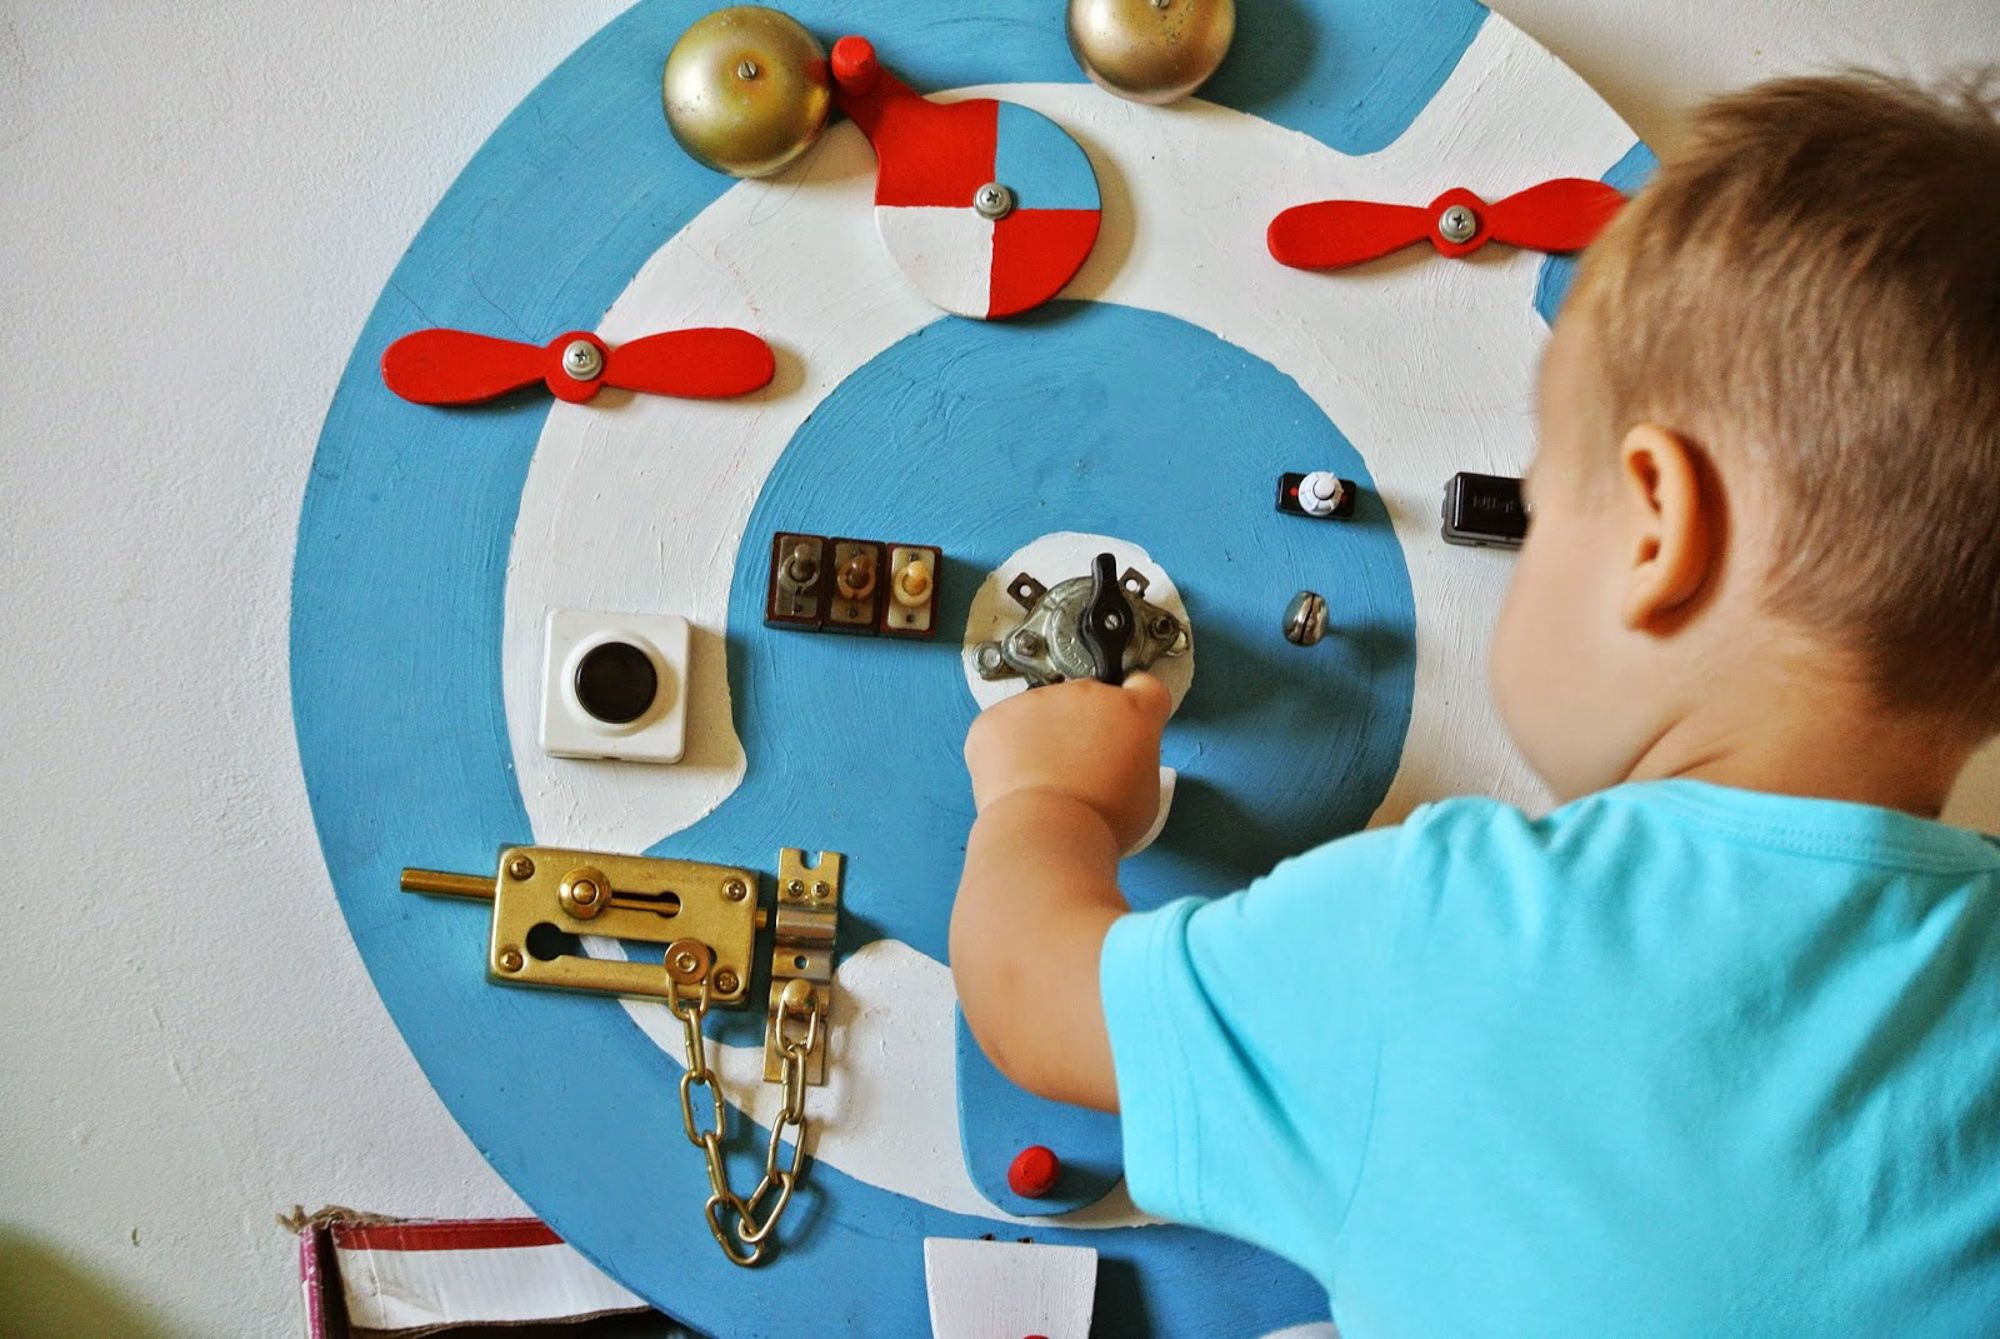 a toddler plays with a switch on round blue and white busy board